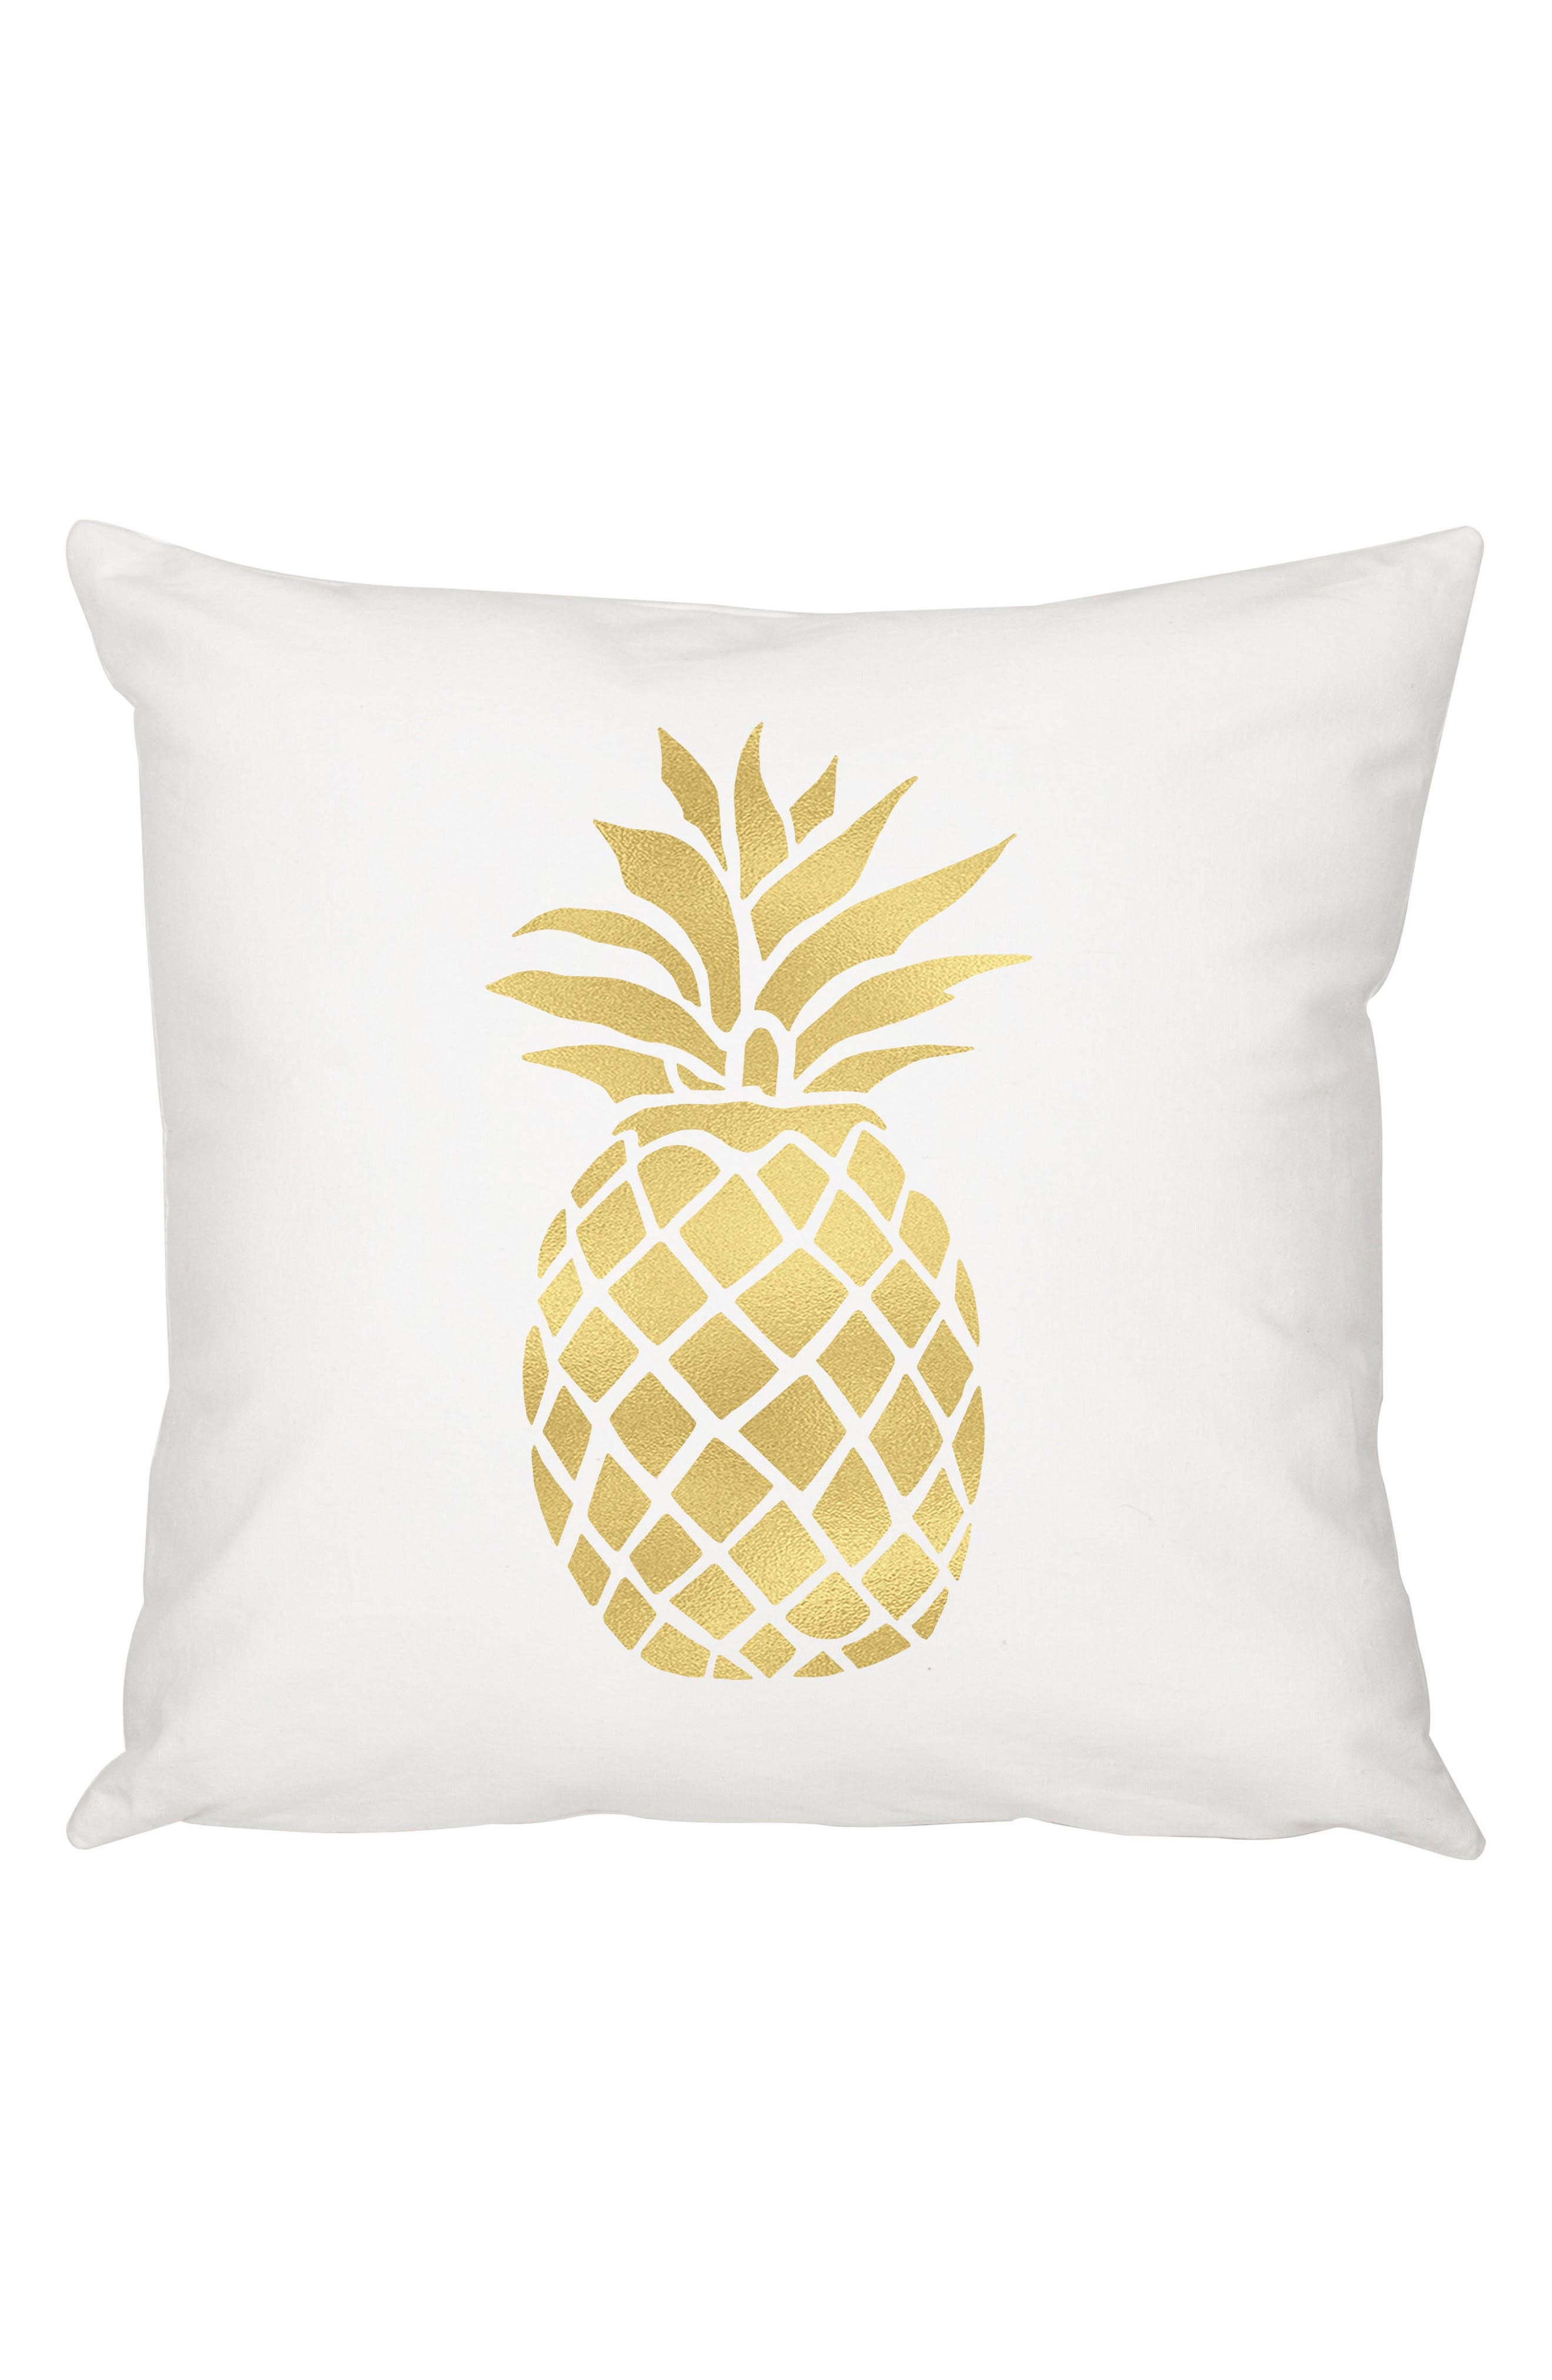 Pineapple Accent Pillow,                         Main,                         color, GOLD